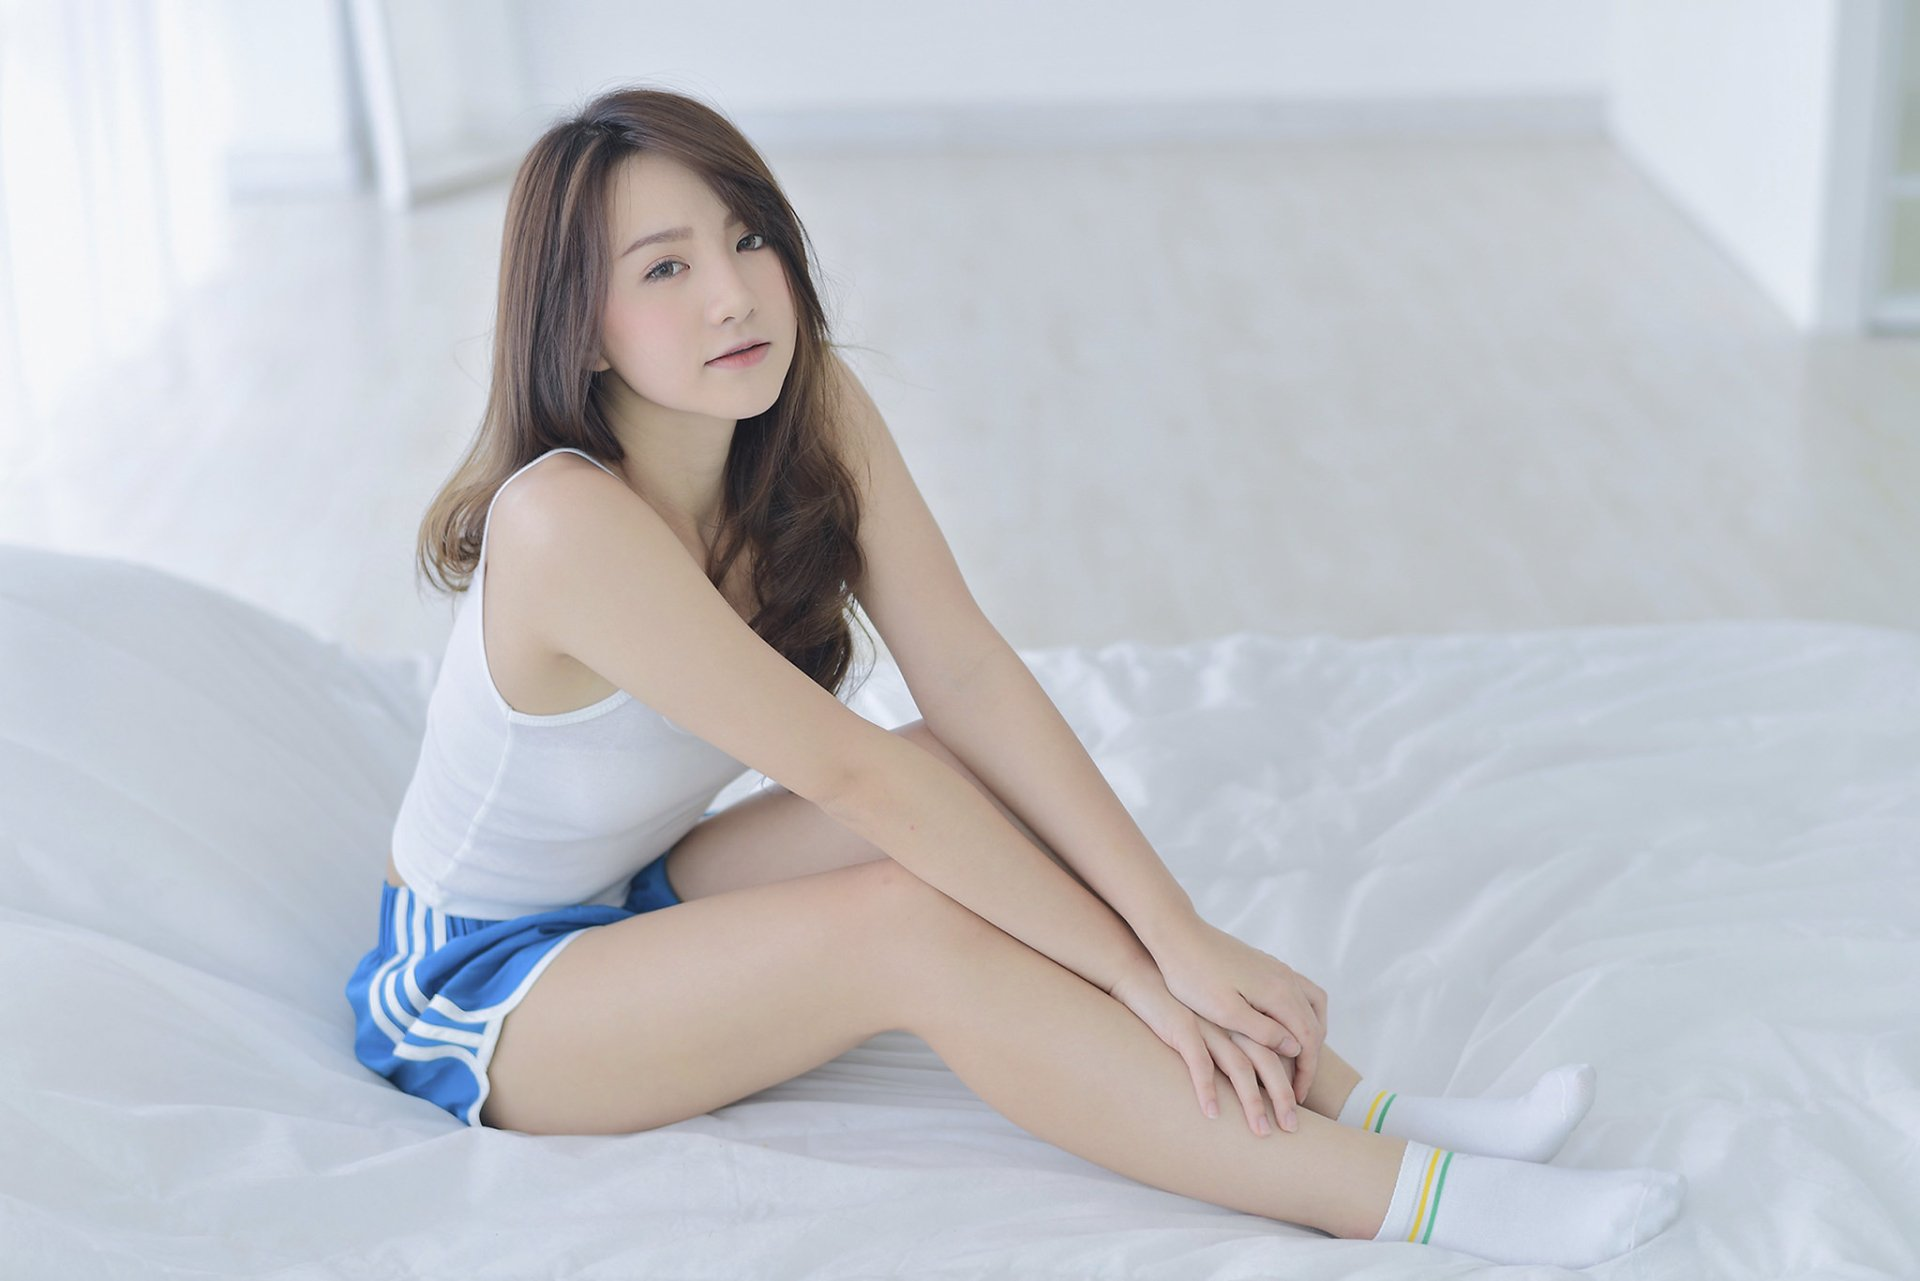 Wallpapers ID:873006